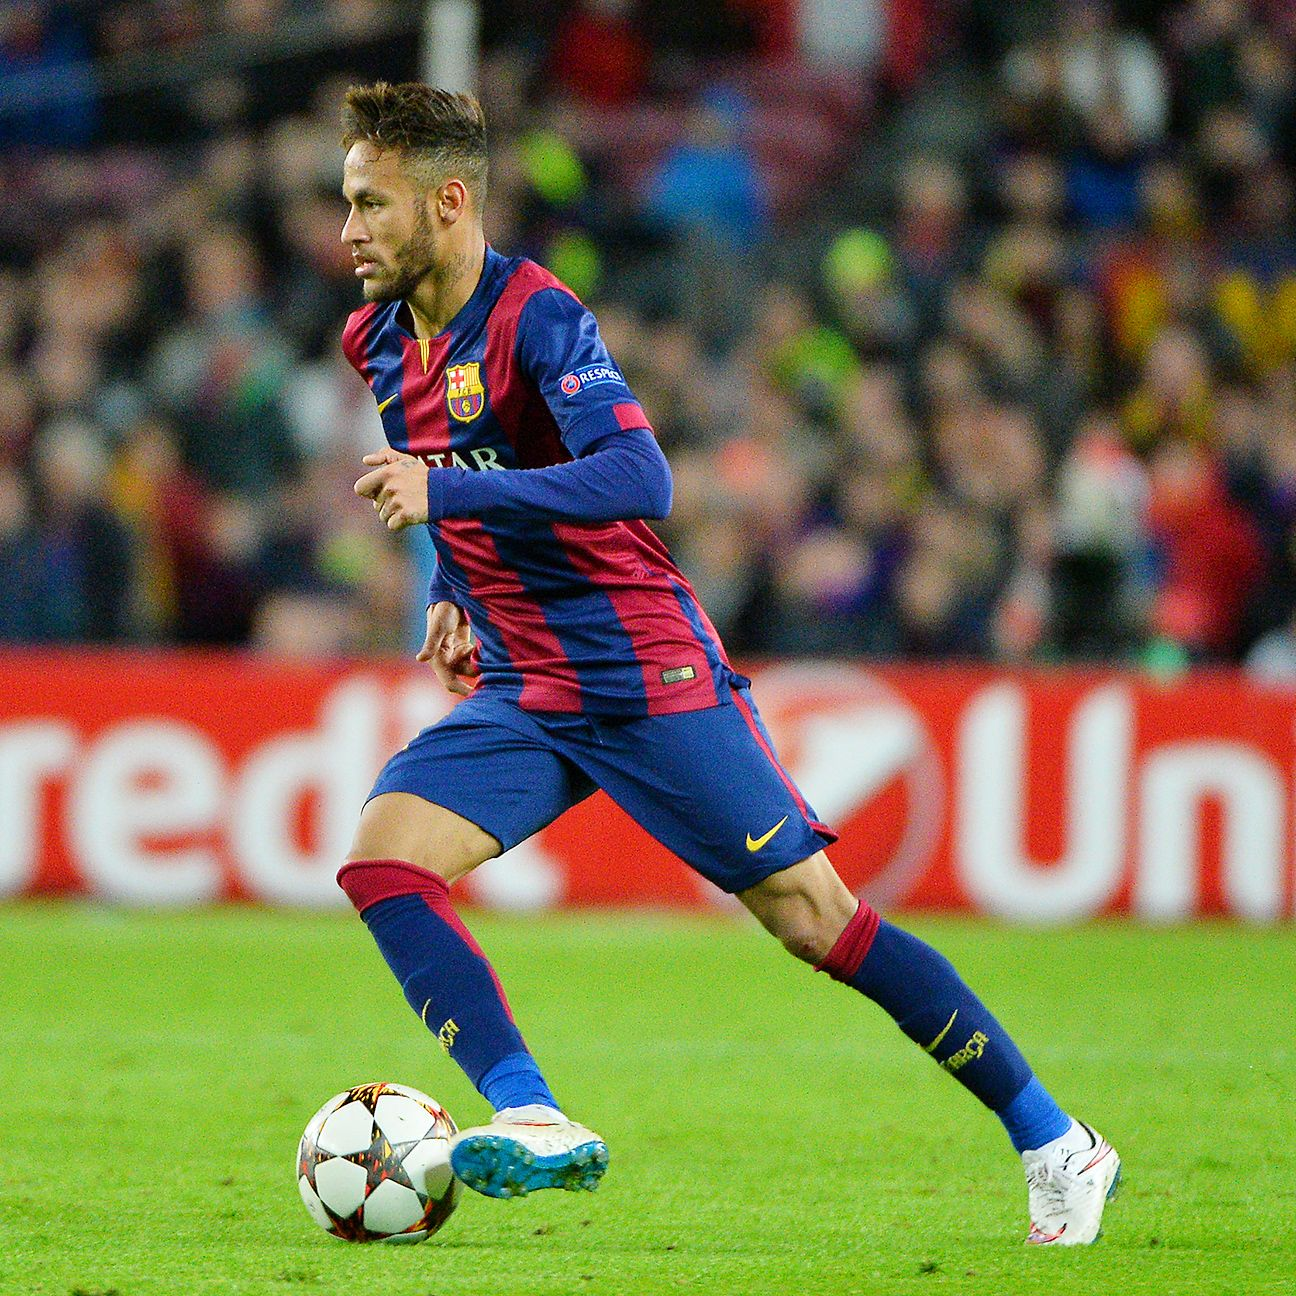 A bulked up Neymar has proven to be a bigger threat for Barcelona this season.